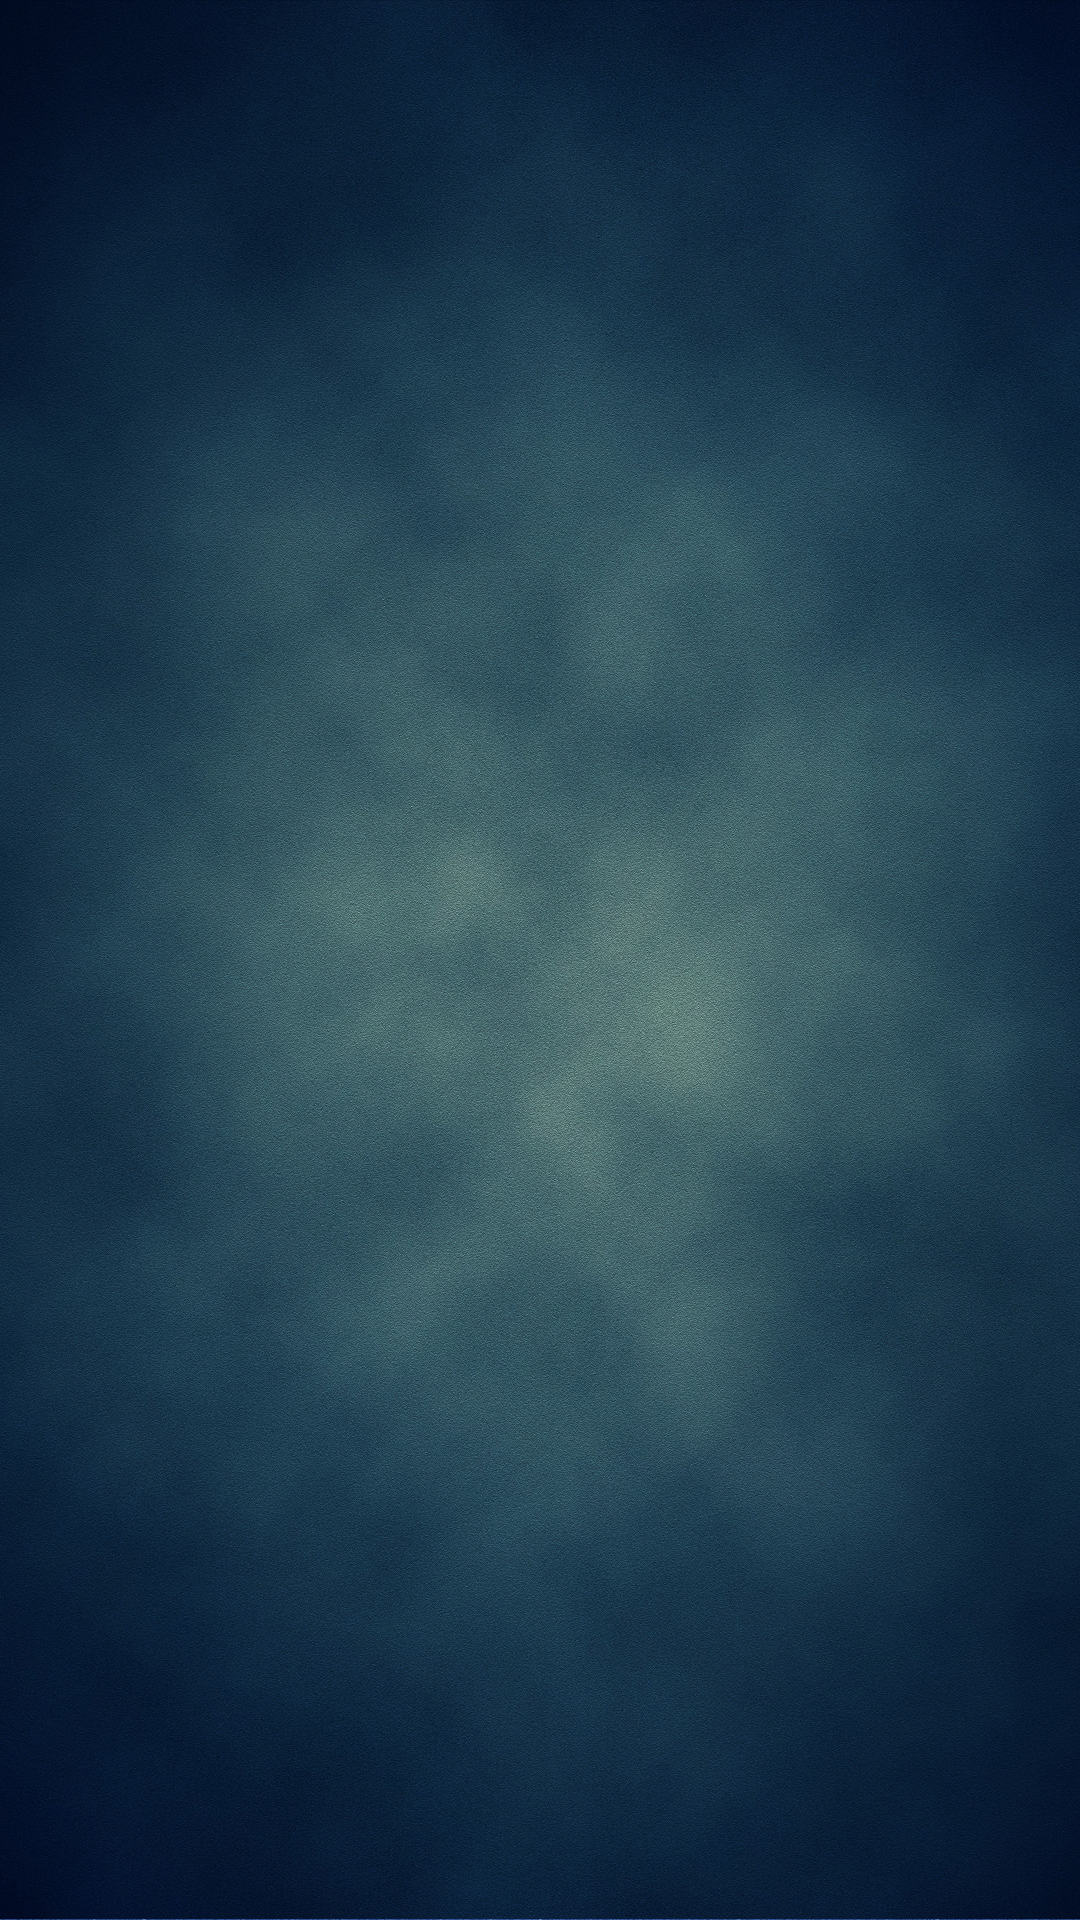 Blue htc one wallpaper